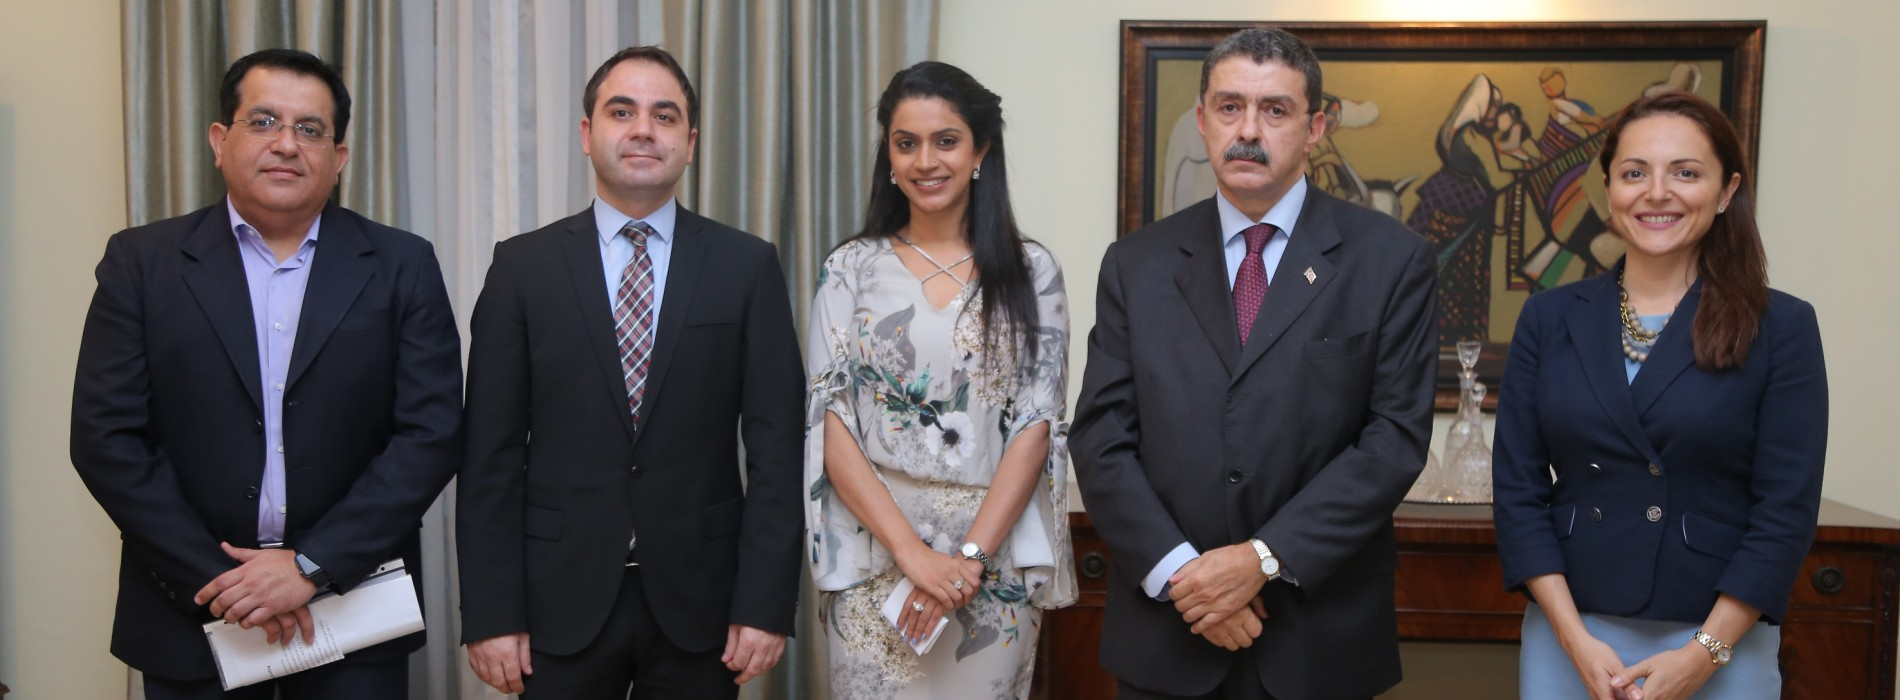 Turkish Ambassador hosted high tea at his official residence